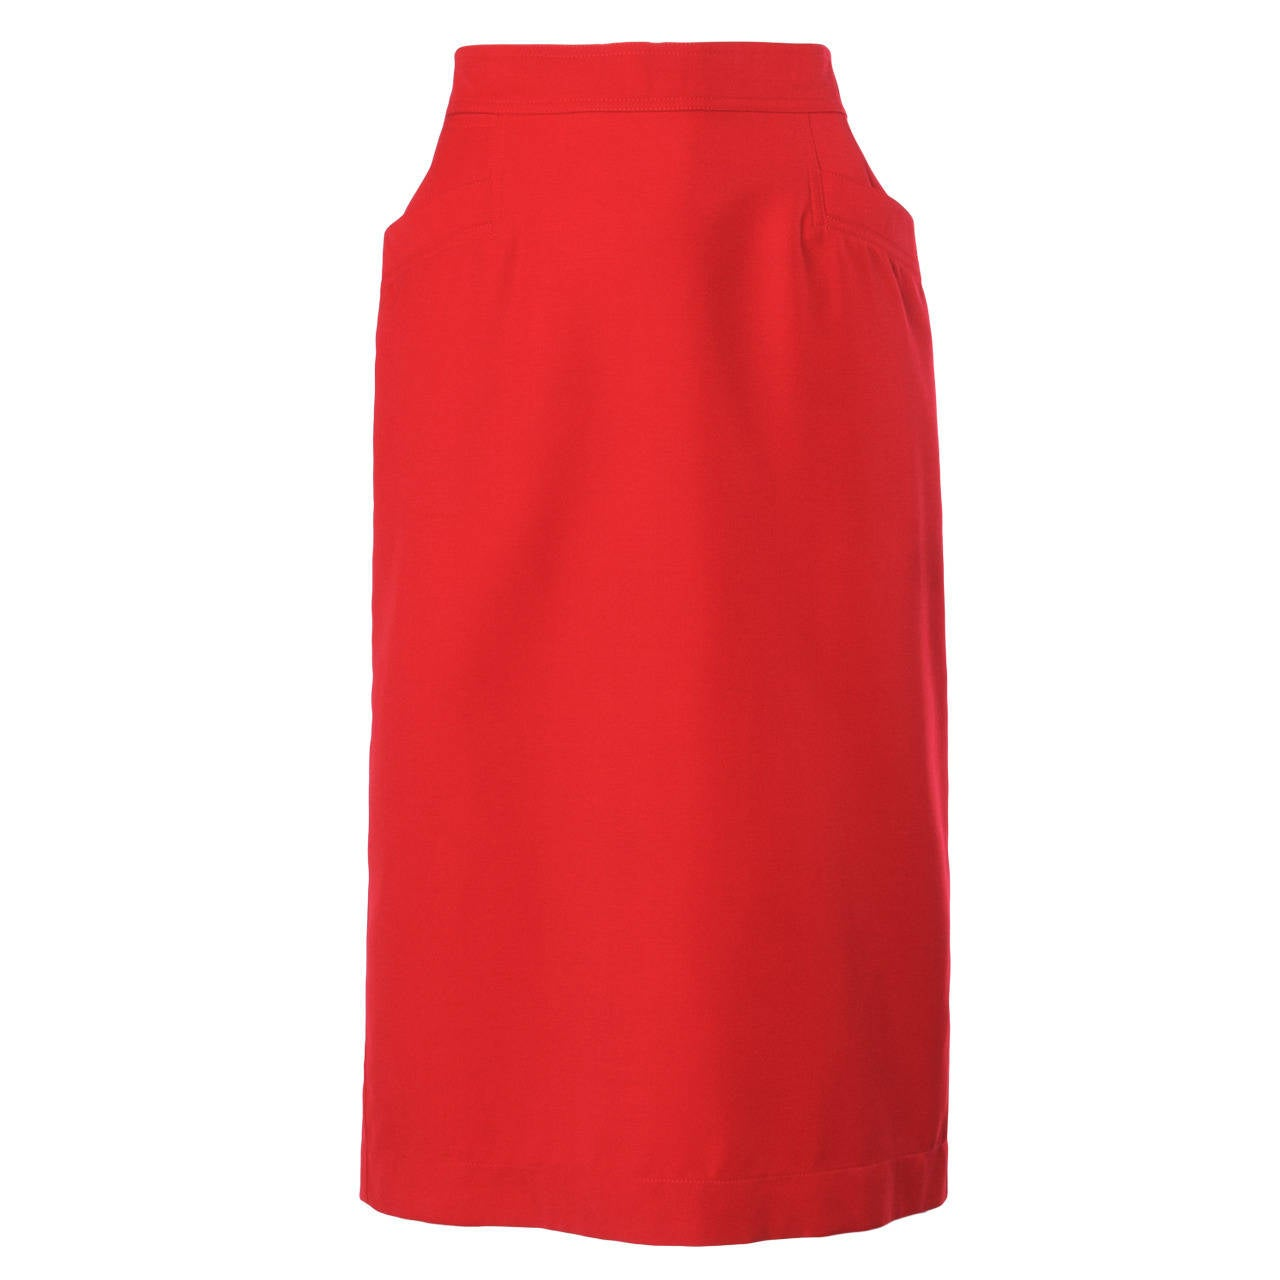 Krizia Vintage 1990s 90s Red Wool Pencil Skirt